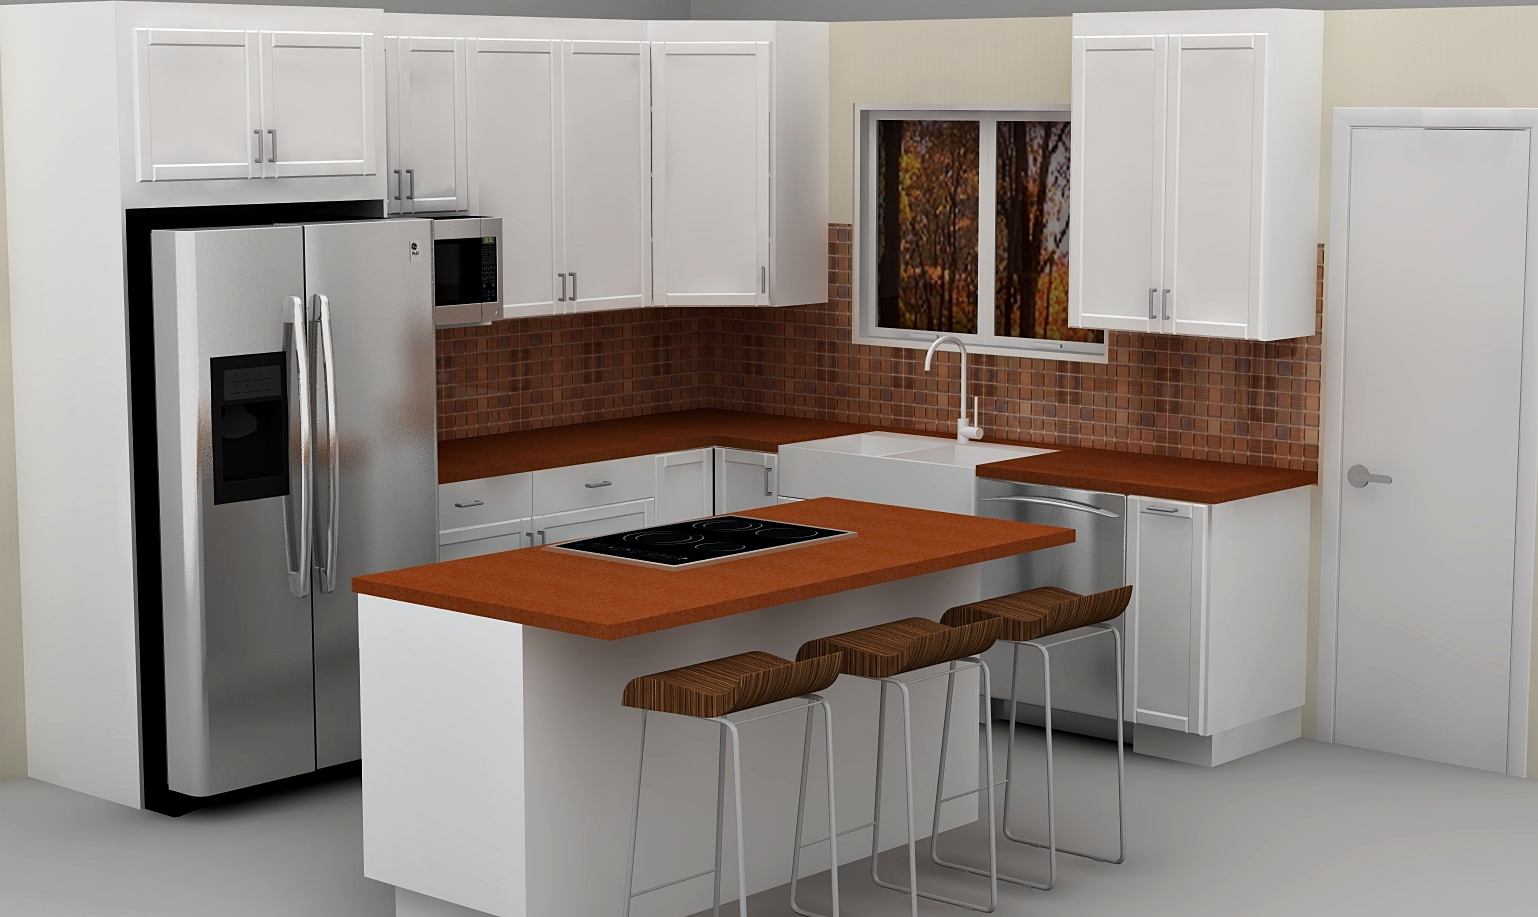 Brighter Kitchen Design Application From Ikea Online Image 4 Of 10